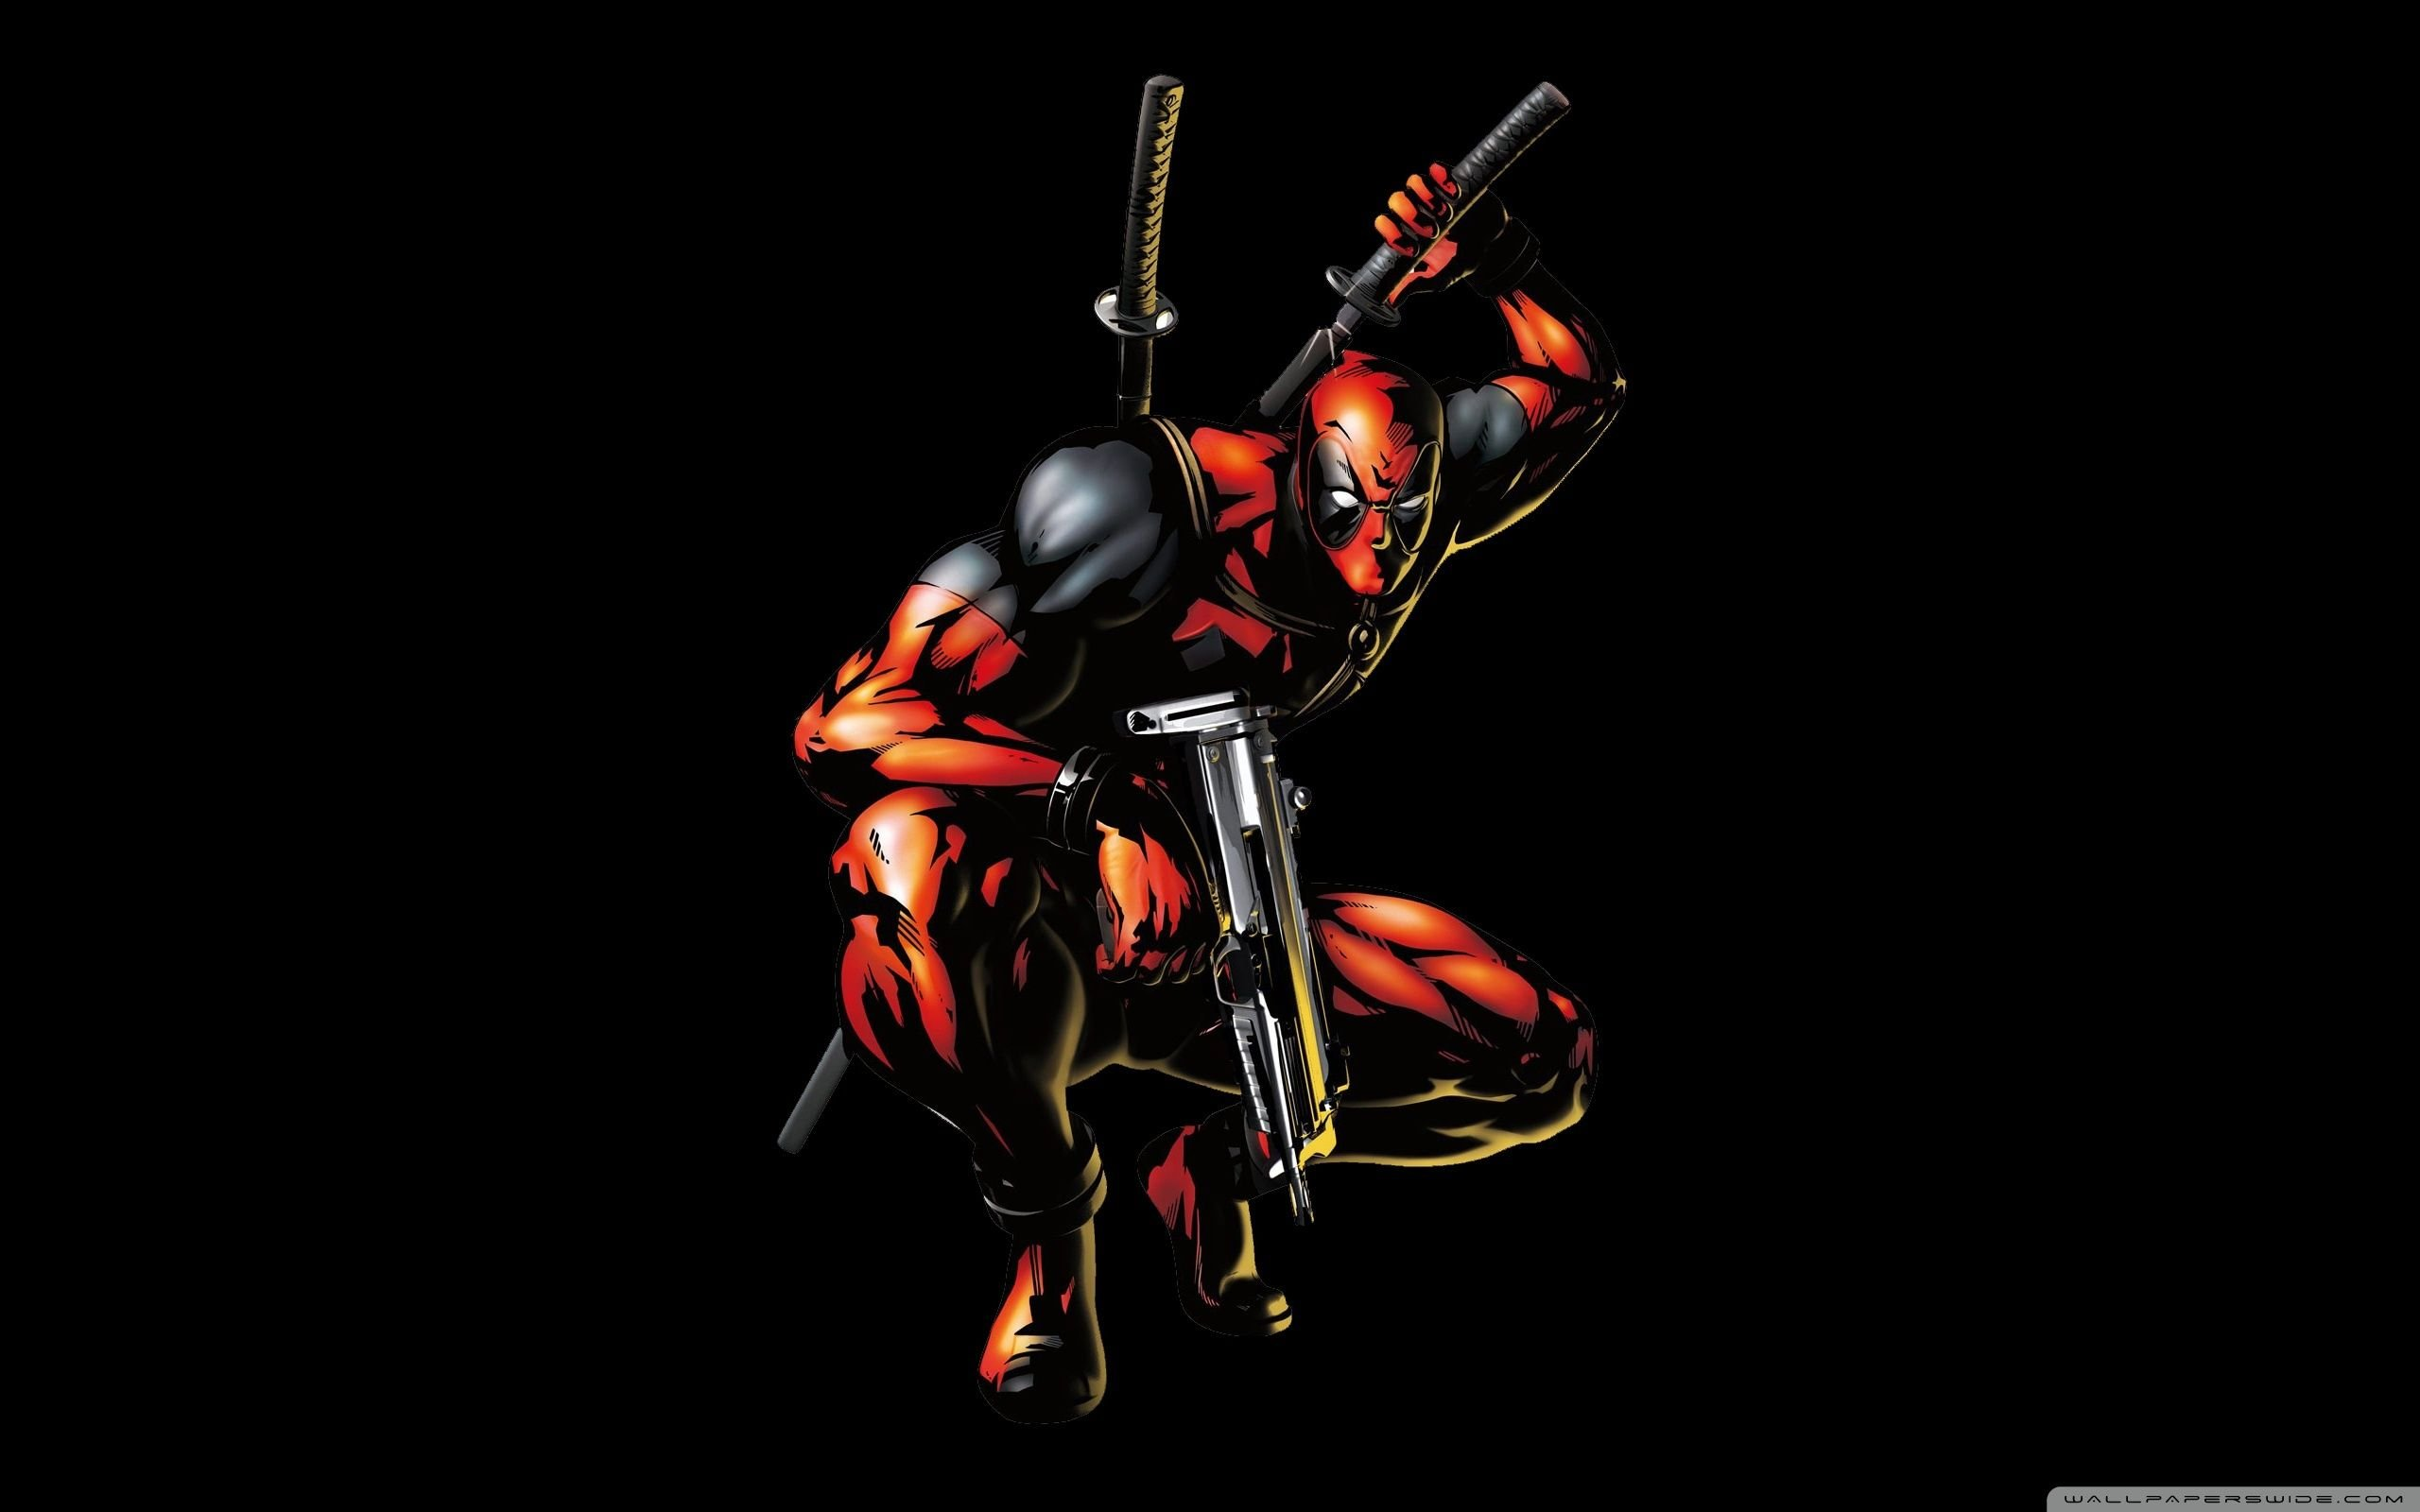 Moving Deadpool Wallpapers Top Free Moving Deadpool Backgrounds